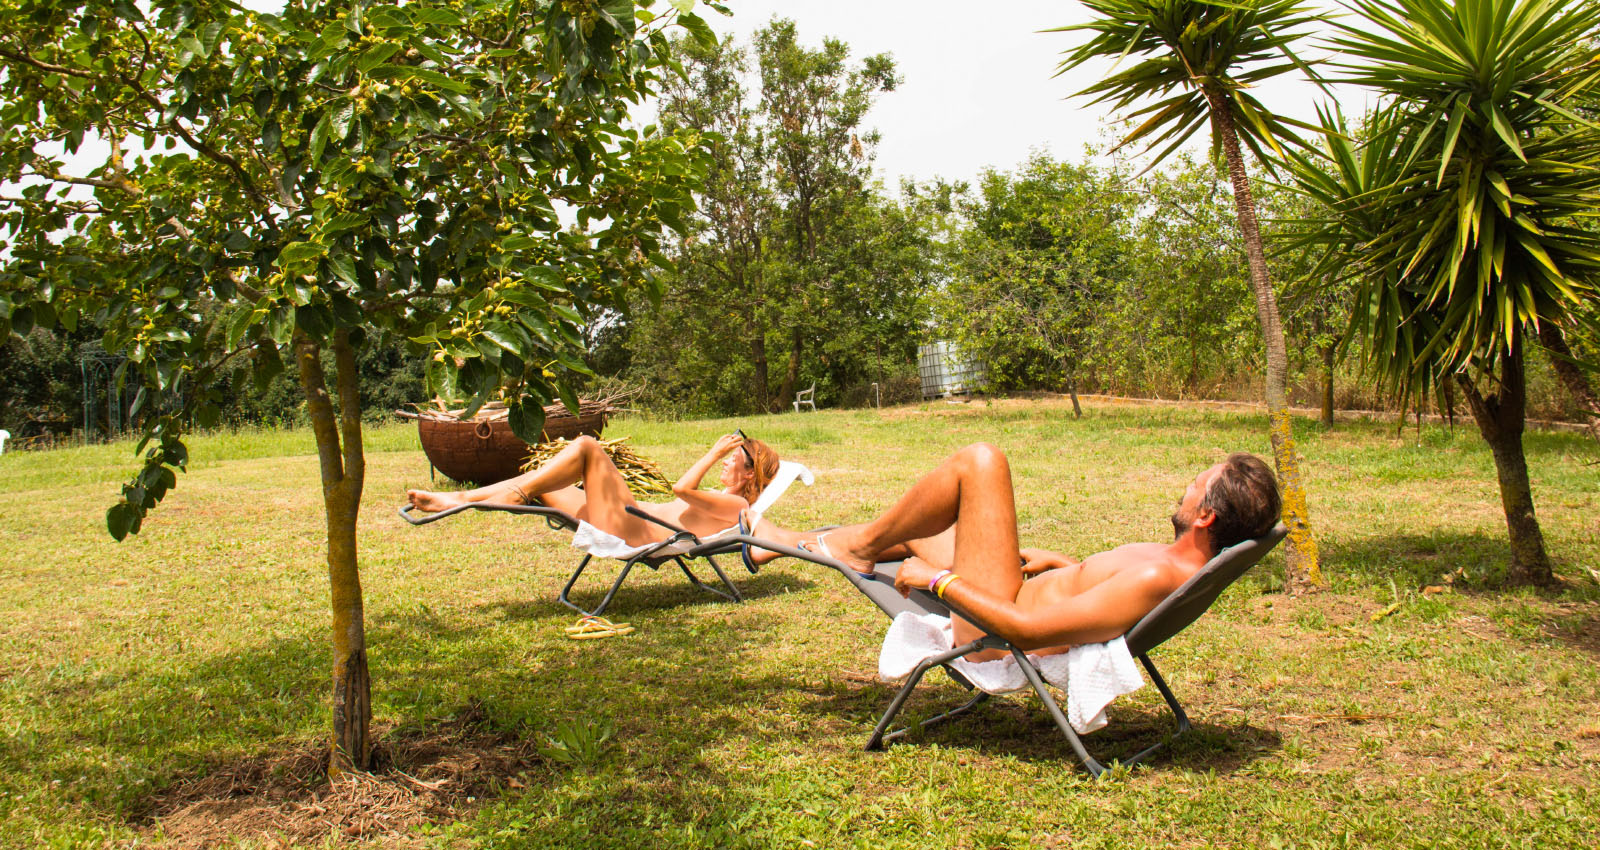 8 Fun Things That You can do at a Naturist Resort